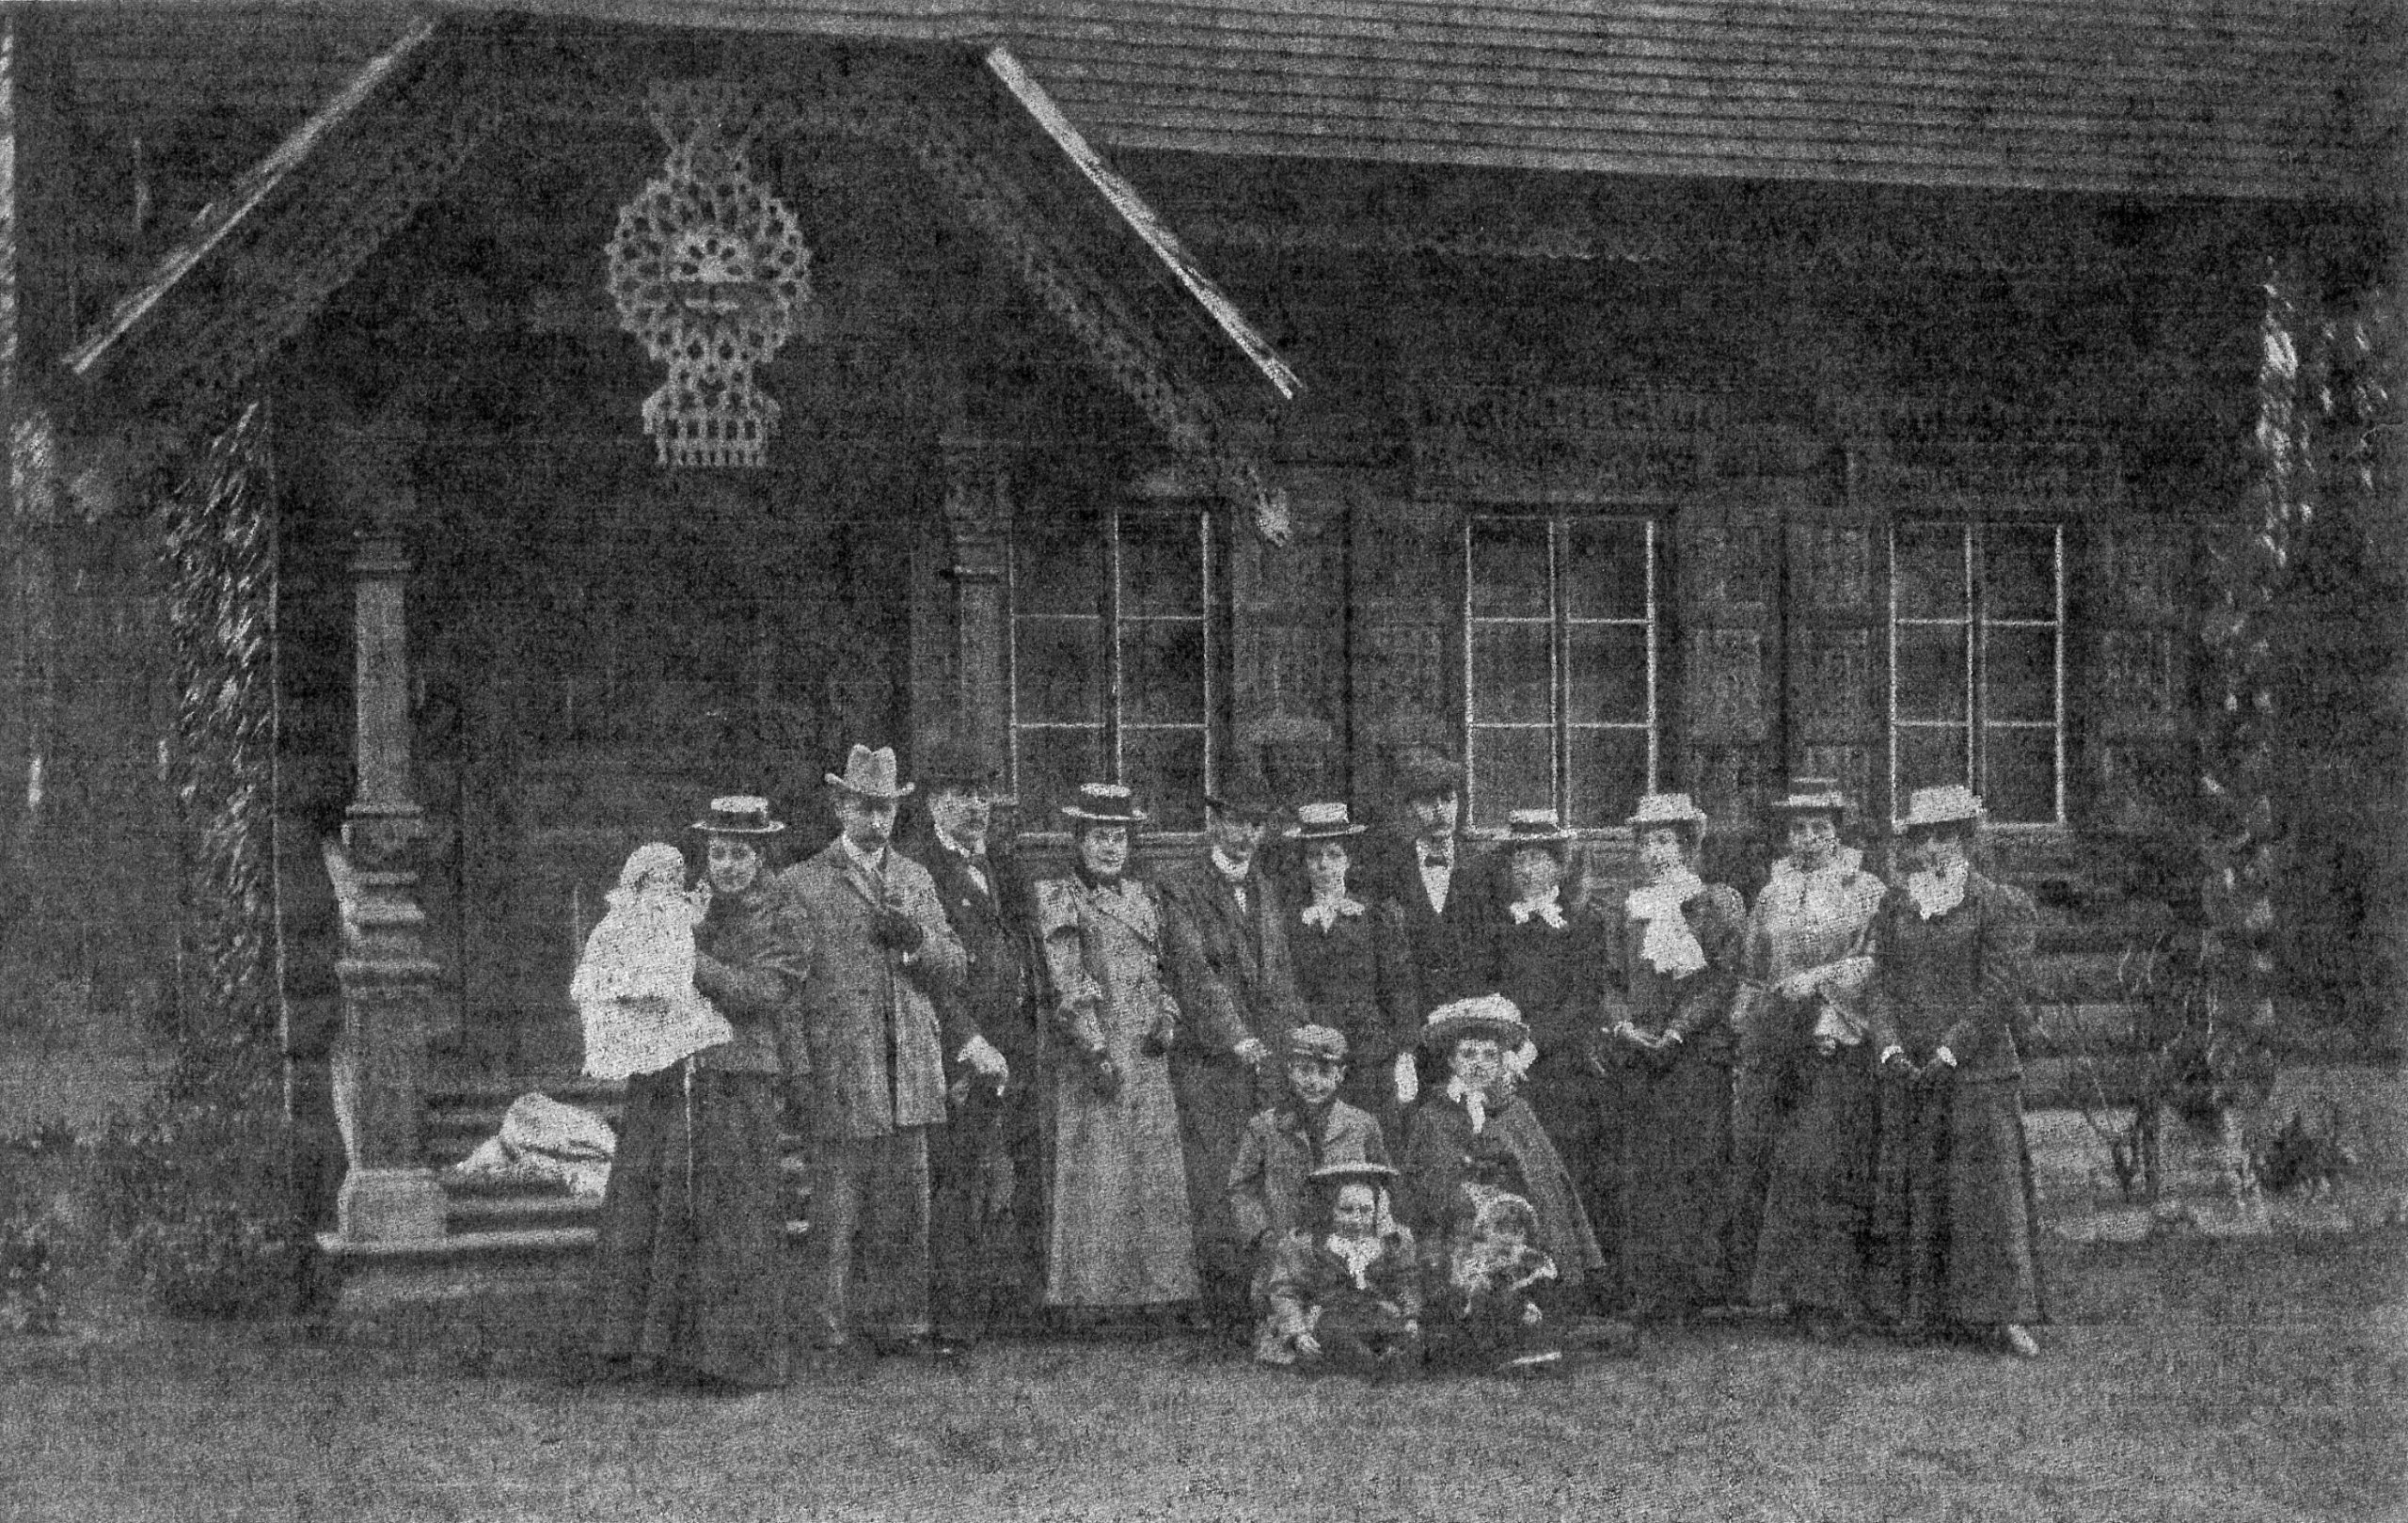 Welbeck Abbey - Russian Log Hut Family Group (Royal) n.d c1900